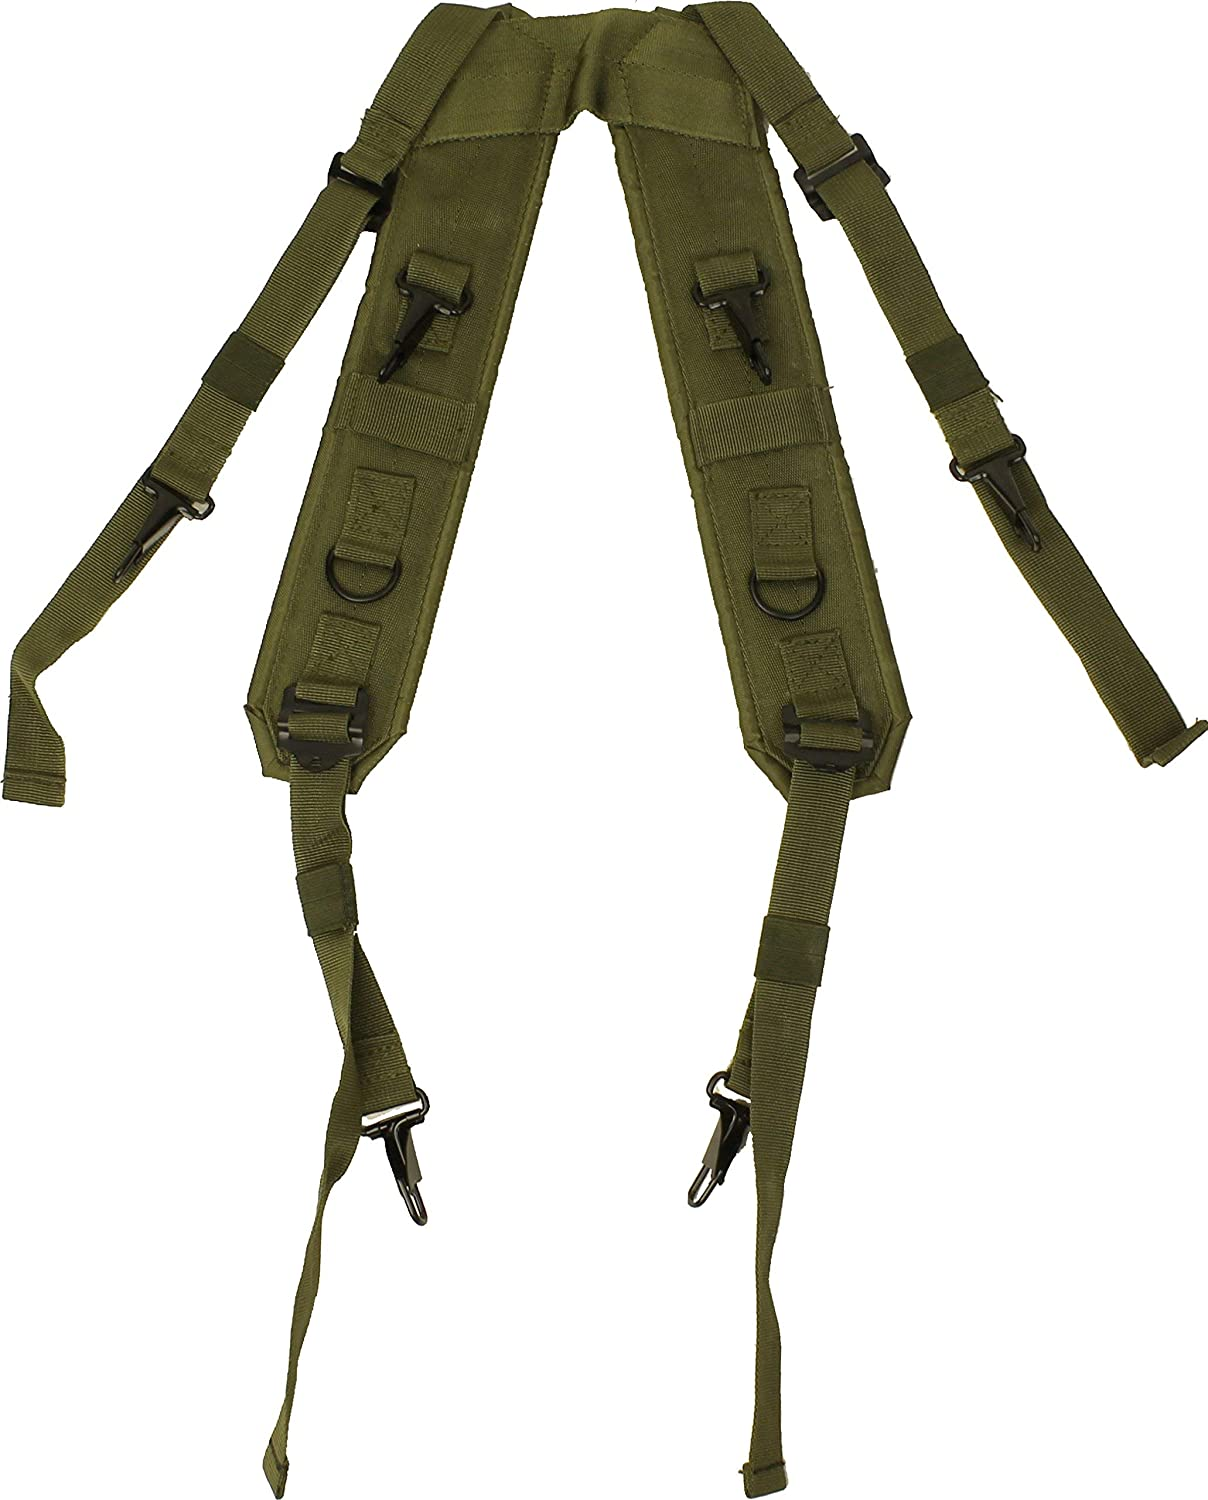 Stroops Basic H-Harness